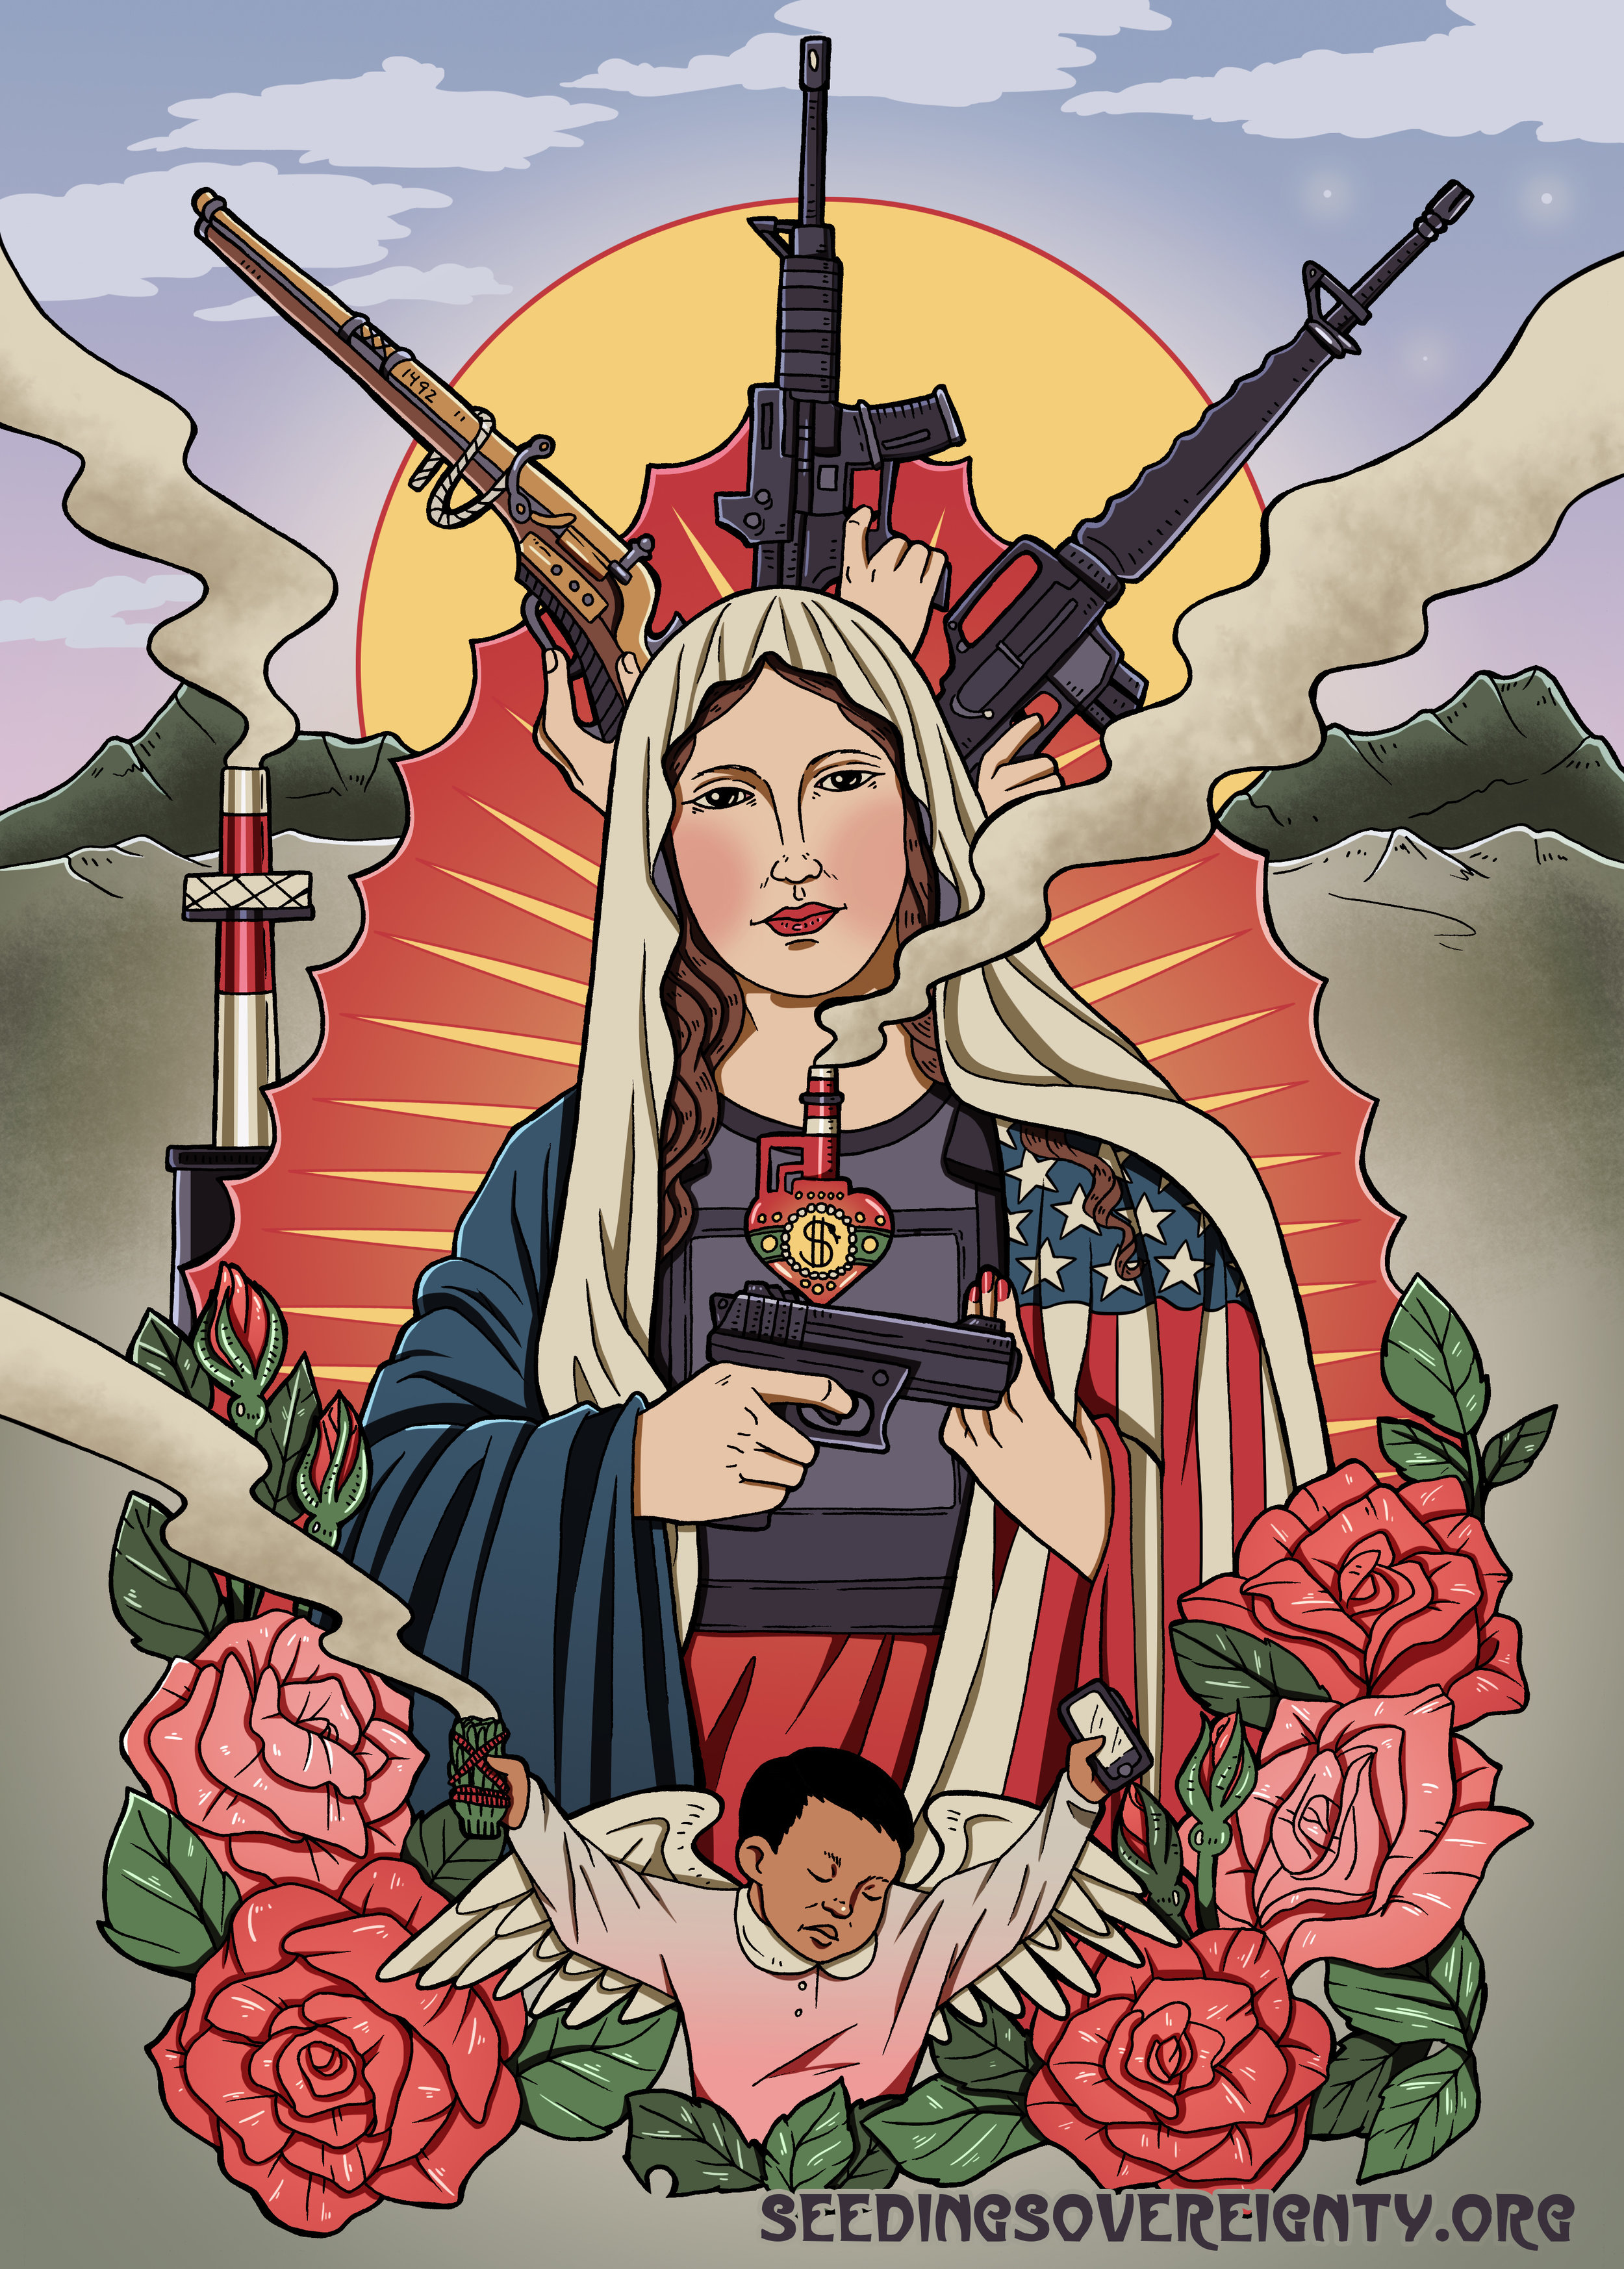 The Second Amendment: A Sacred Covenant of Ethnic Cleansing and Slavery Between the Nation State and Settler Militias - Written by Christine Nobiss & Art by Jackie FawnPublished March 20, 2018Printable PDF Zine Here